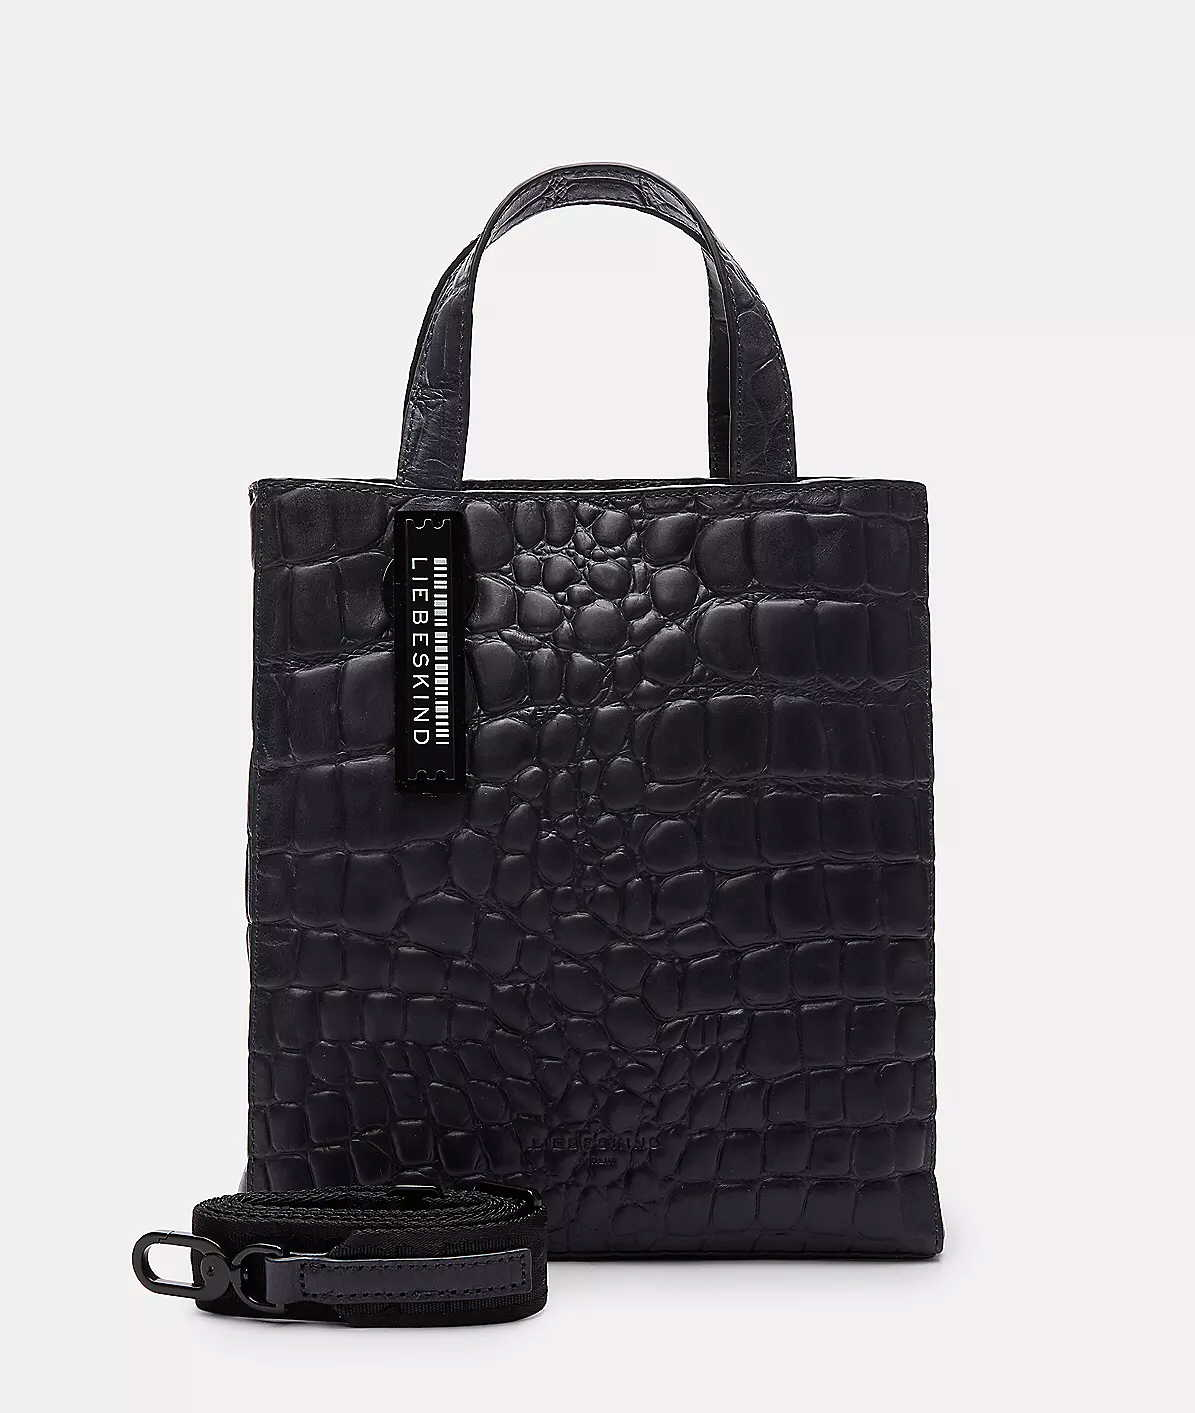 Liebeskind Berlin Paperbag/Tote Small Croco